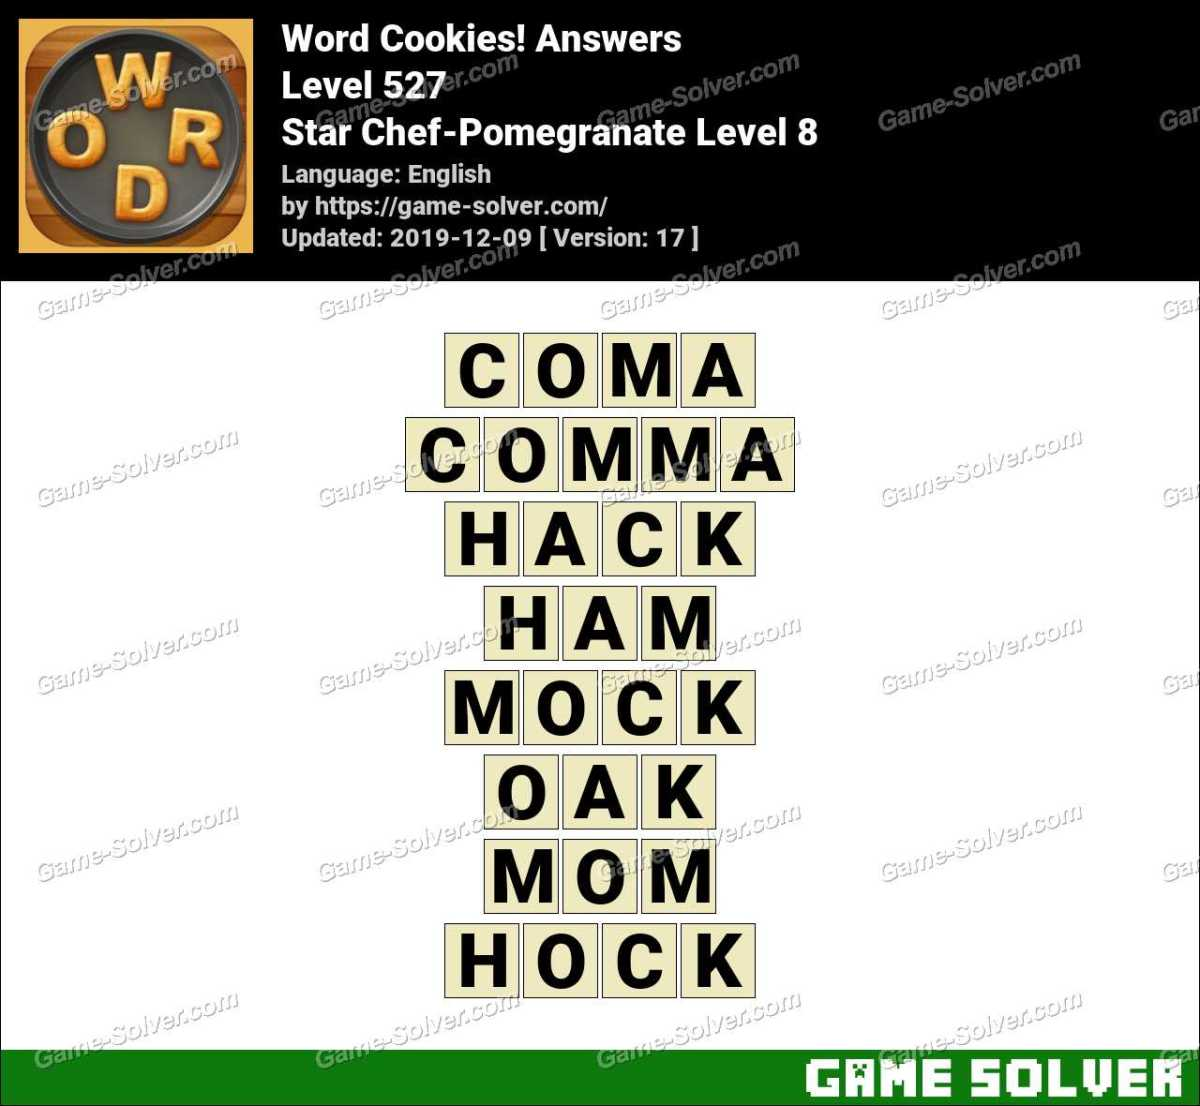 Word Cookies Star Chef-Pomegranate Level 8 Answers